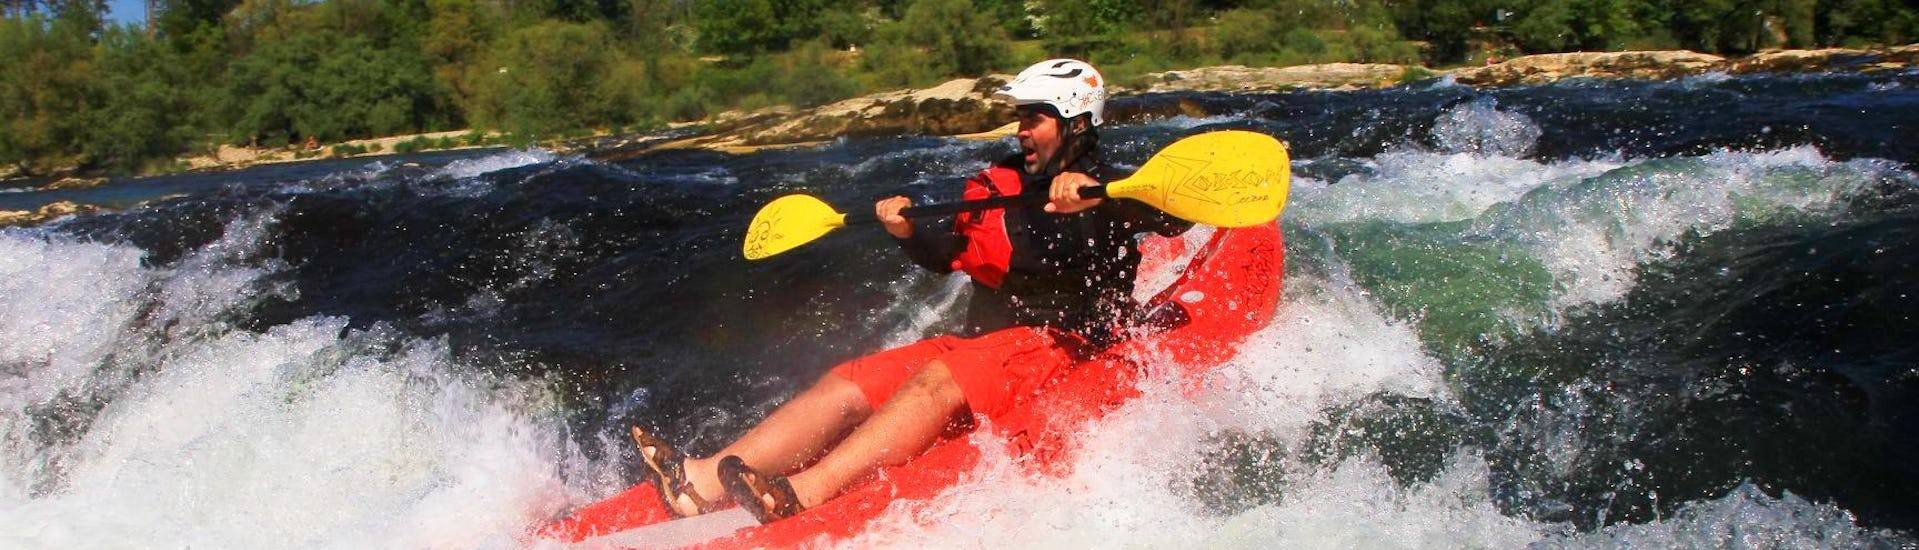 During the Rafting in a FUNYak on the Rhine - Wild Rhine with Rheinraft, a participant conquers a rapid in his agile, inflatable kayak.